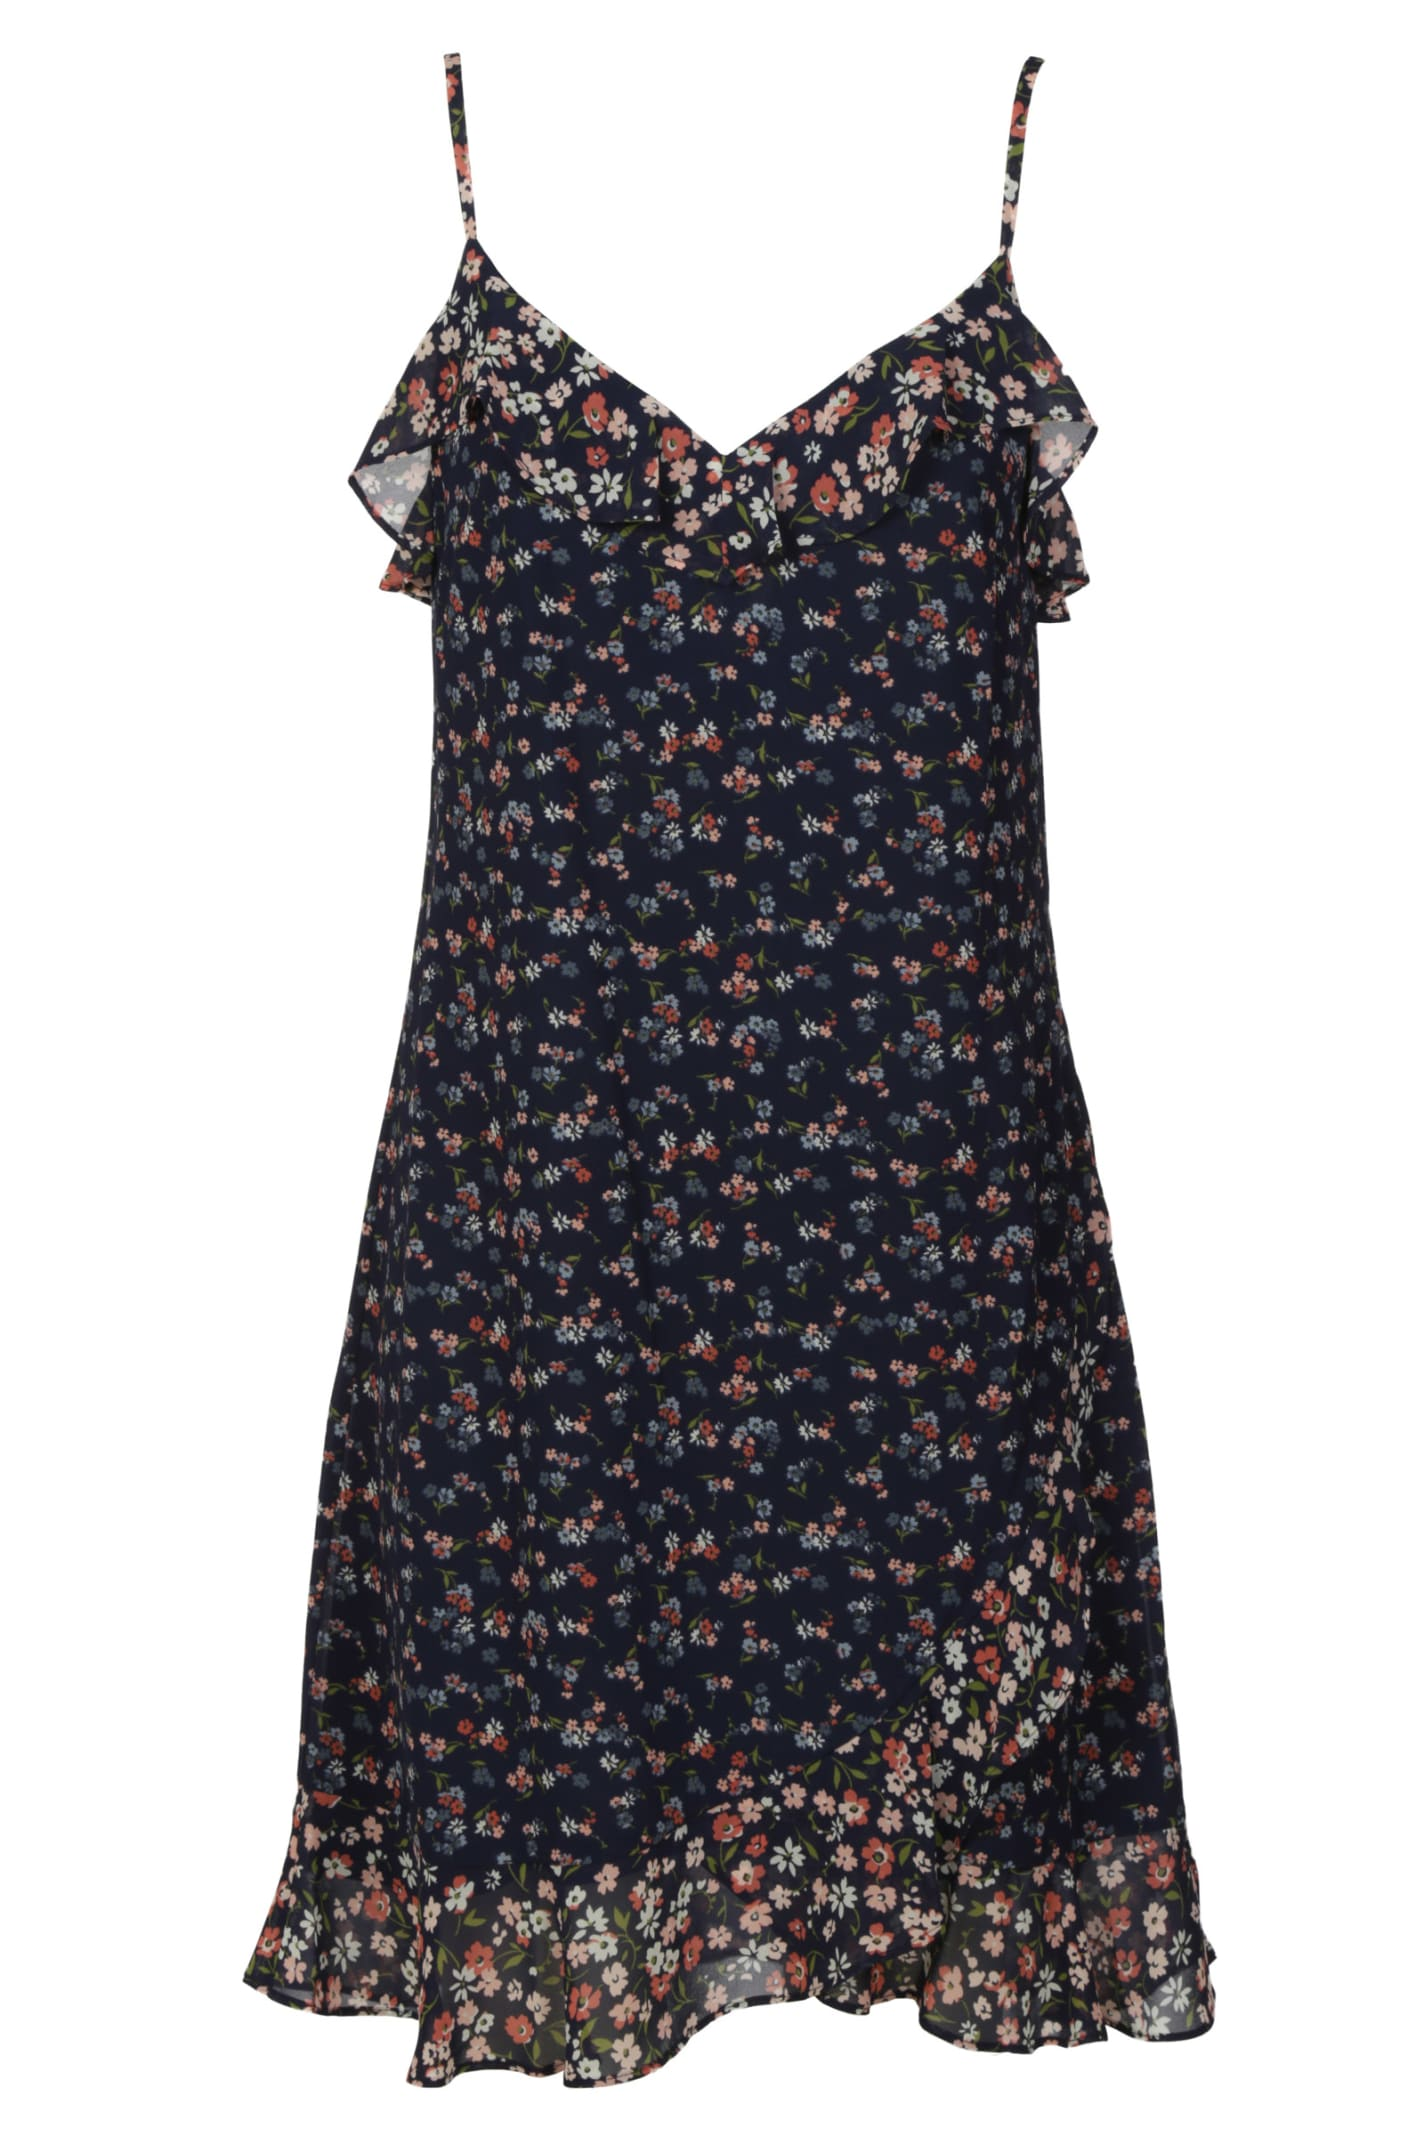 Buy Michael Kors Floral Print Sleeveless Dress online, shop Michael Kors with free shipping